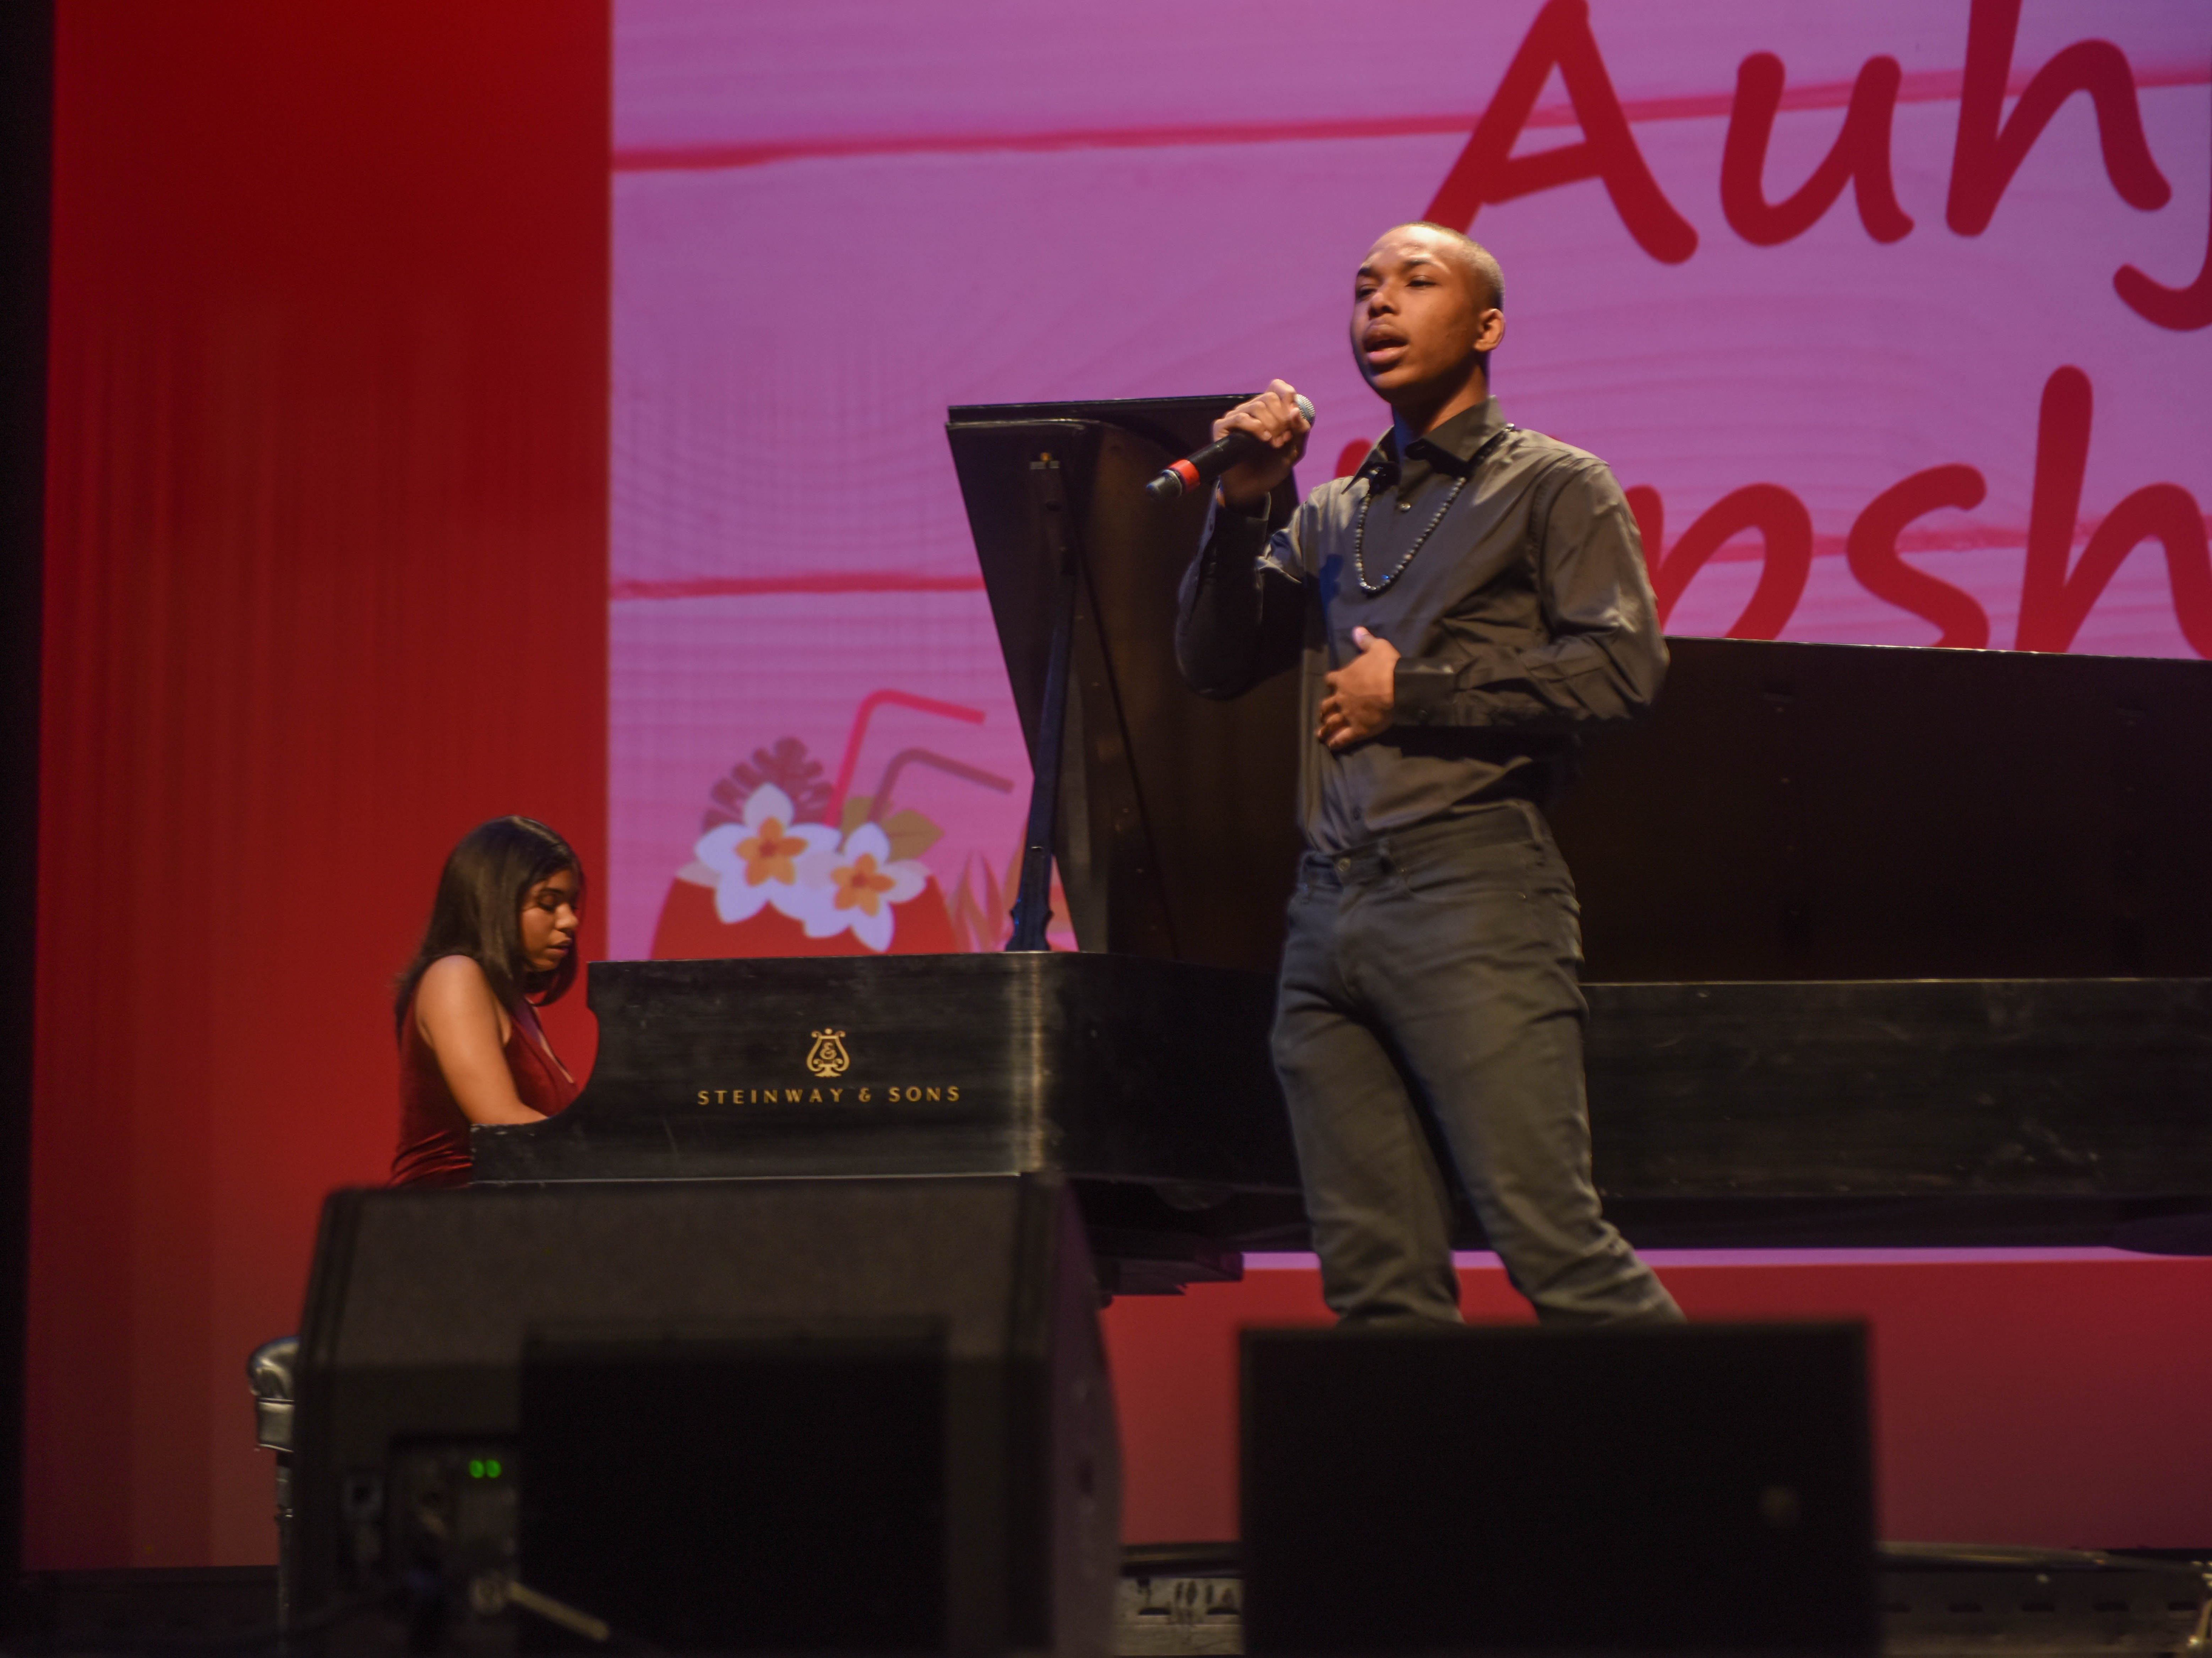 Auhjen Upshaw. The 2019 Englewood Idol was held at bergenPAC theater. The singing competition is open to any high school student who currently lives or goes to school in Englewood, NJ. This years winner was Genesis Capellan. 01/11/2019